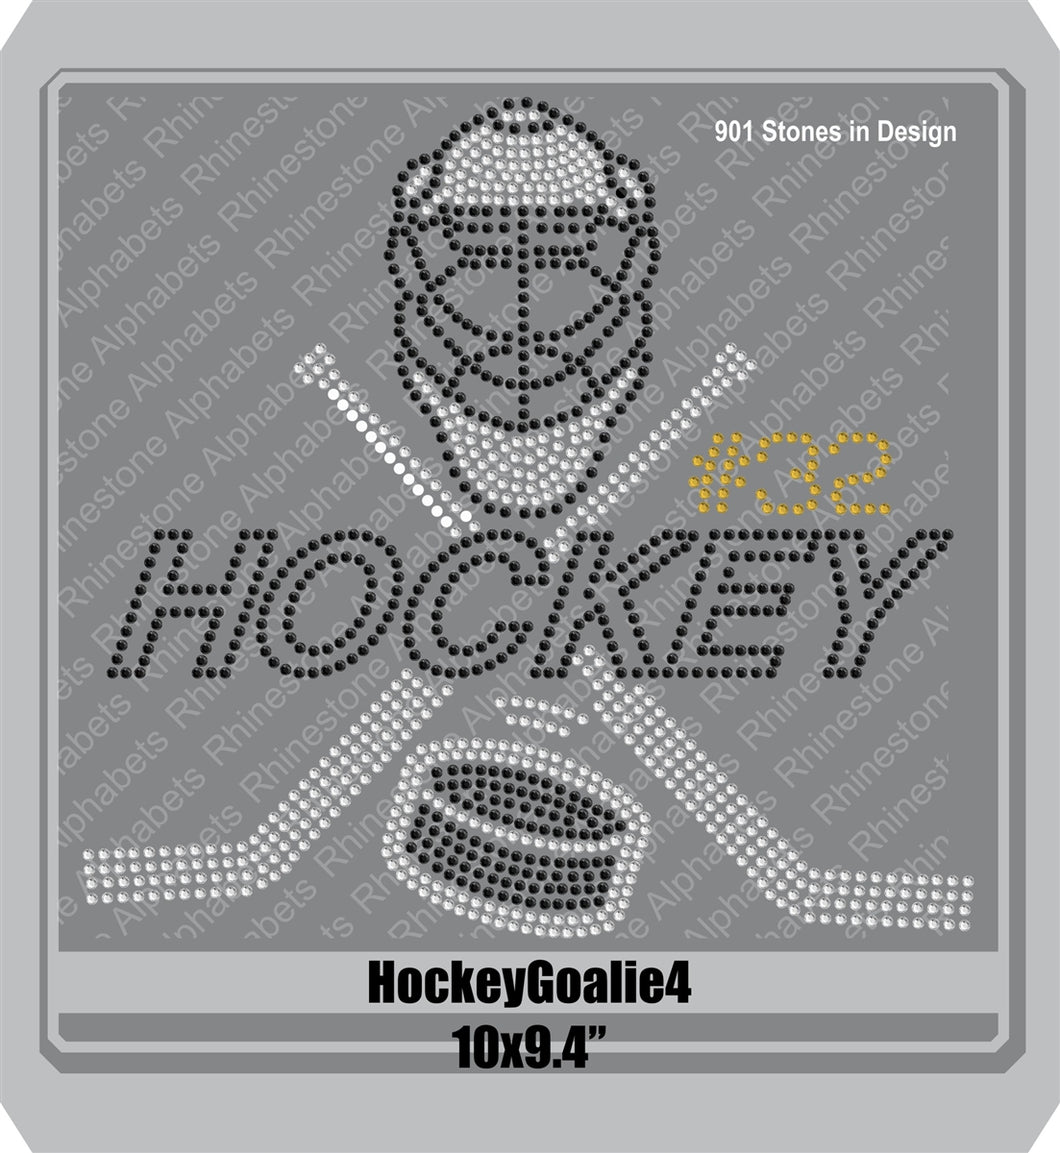 Hockey Goalie 4 ,TTF Rhinestone Fonts & Rhinestone Designs